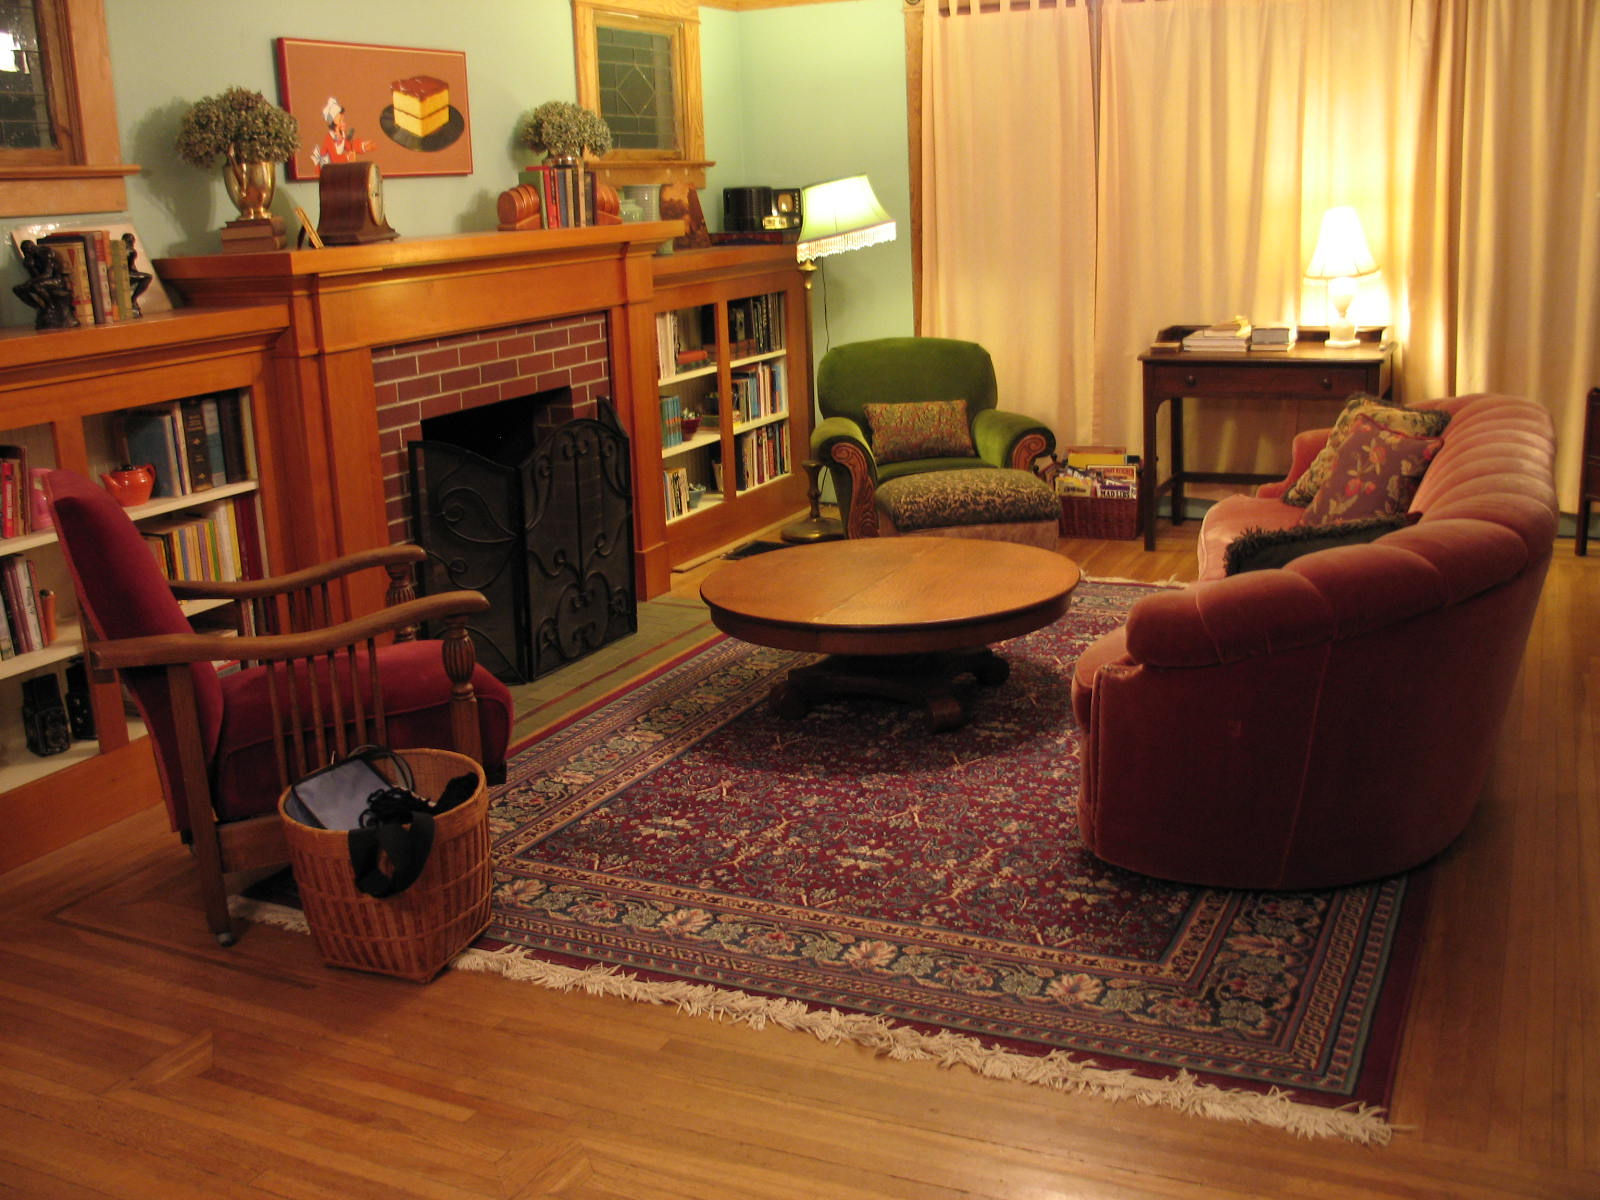 apartment living essay The financial benefits of living off campus vary depending on the cost of the apartment and the living situation the rent may cost more than a dorm room, but if you .